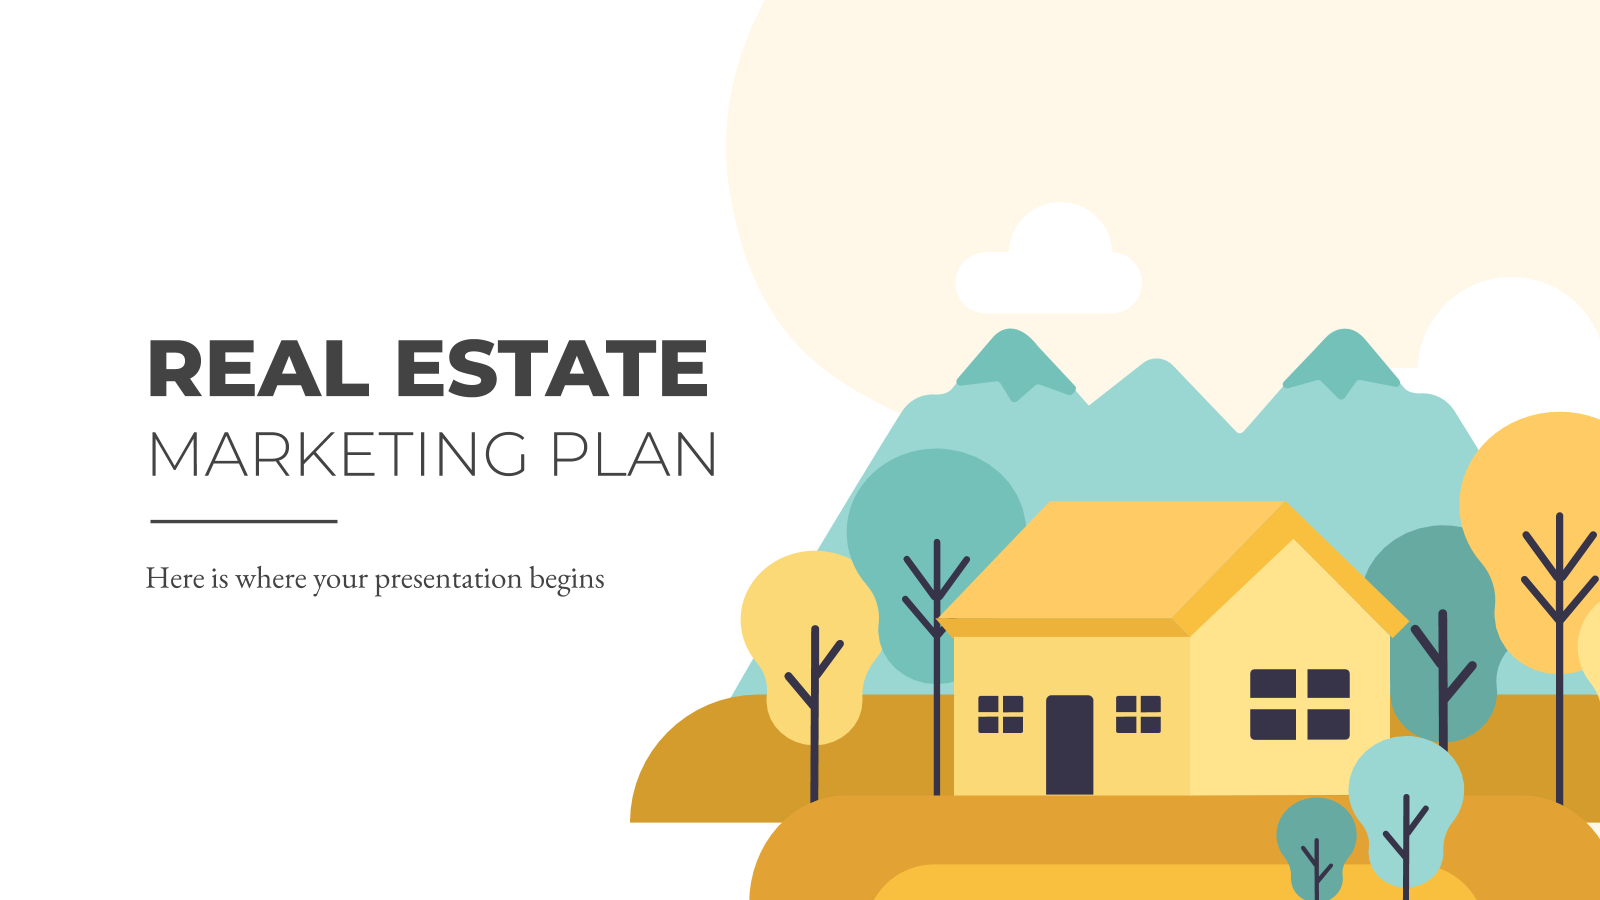 Real Estate Marketing Plan presentation template